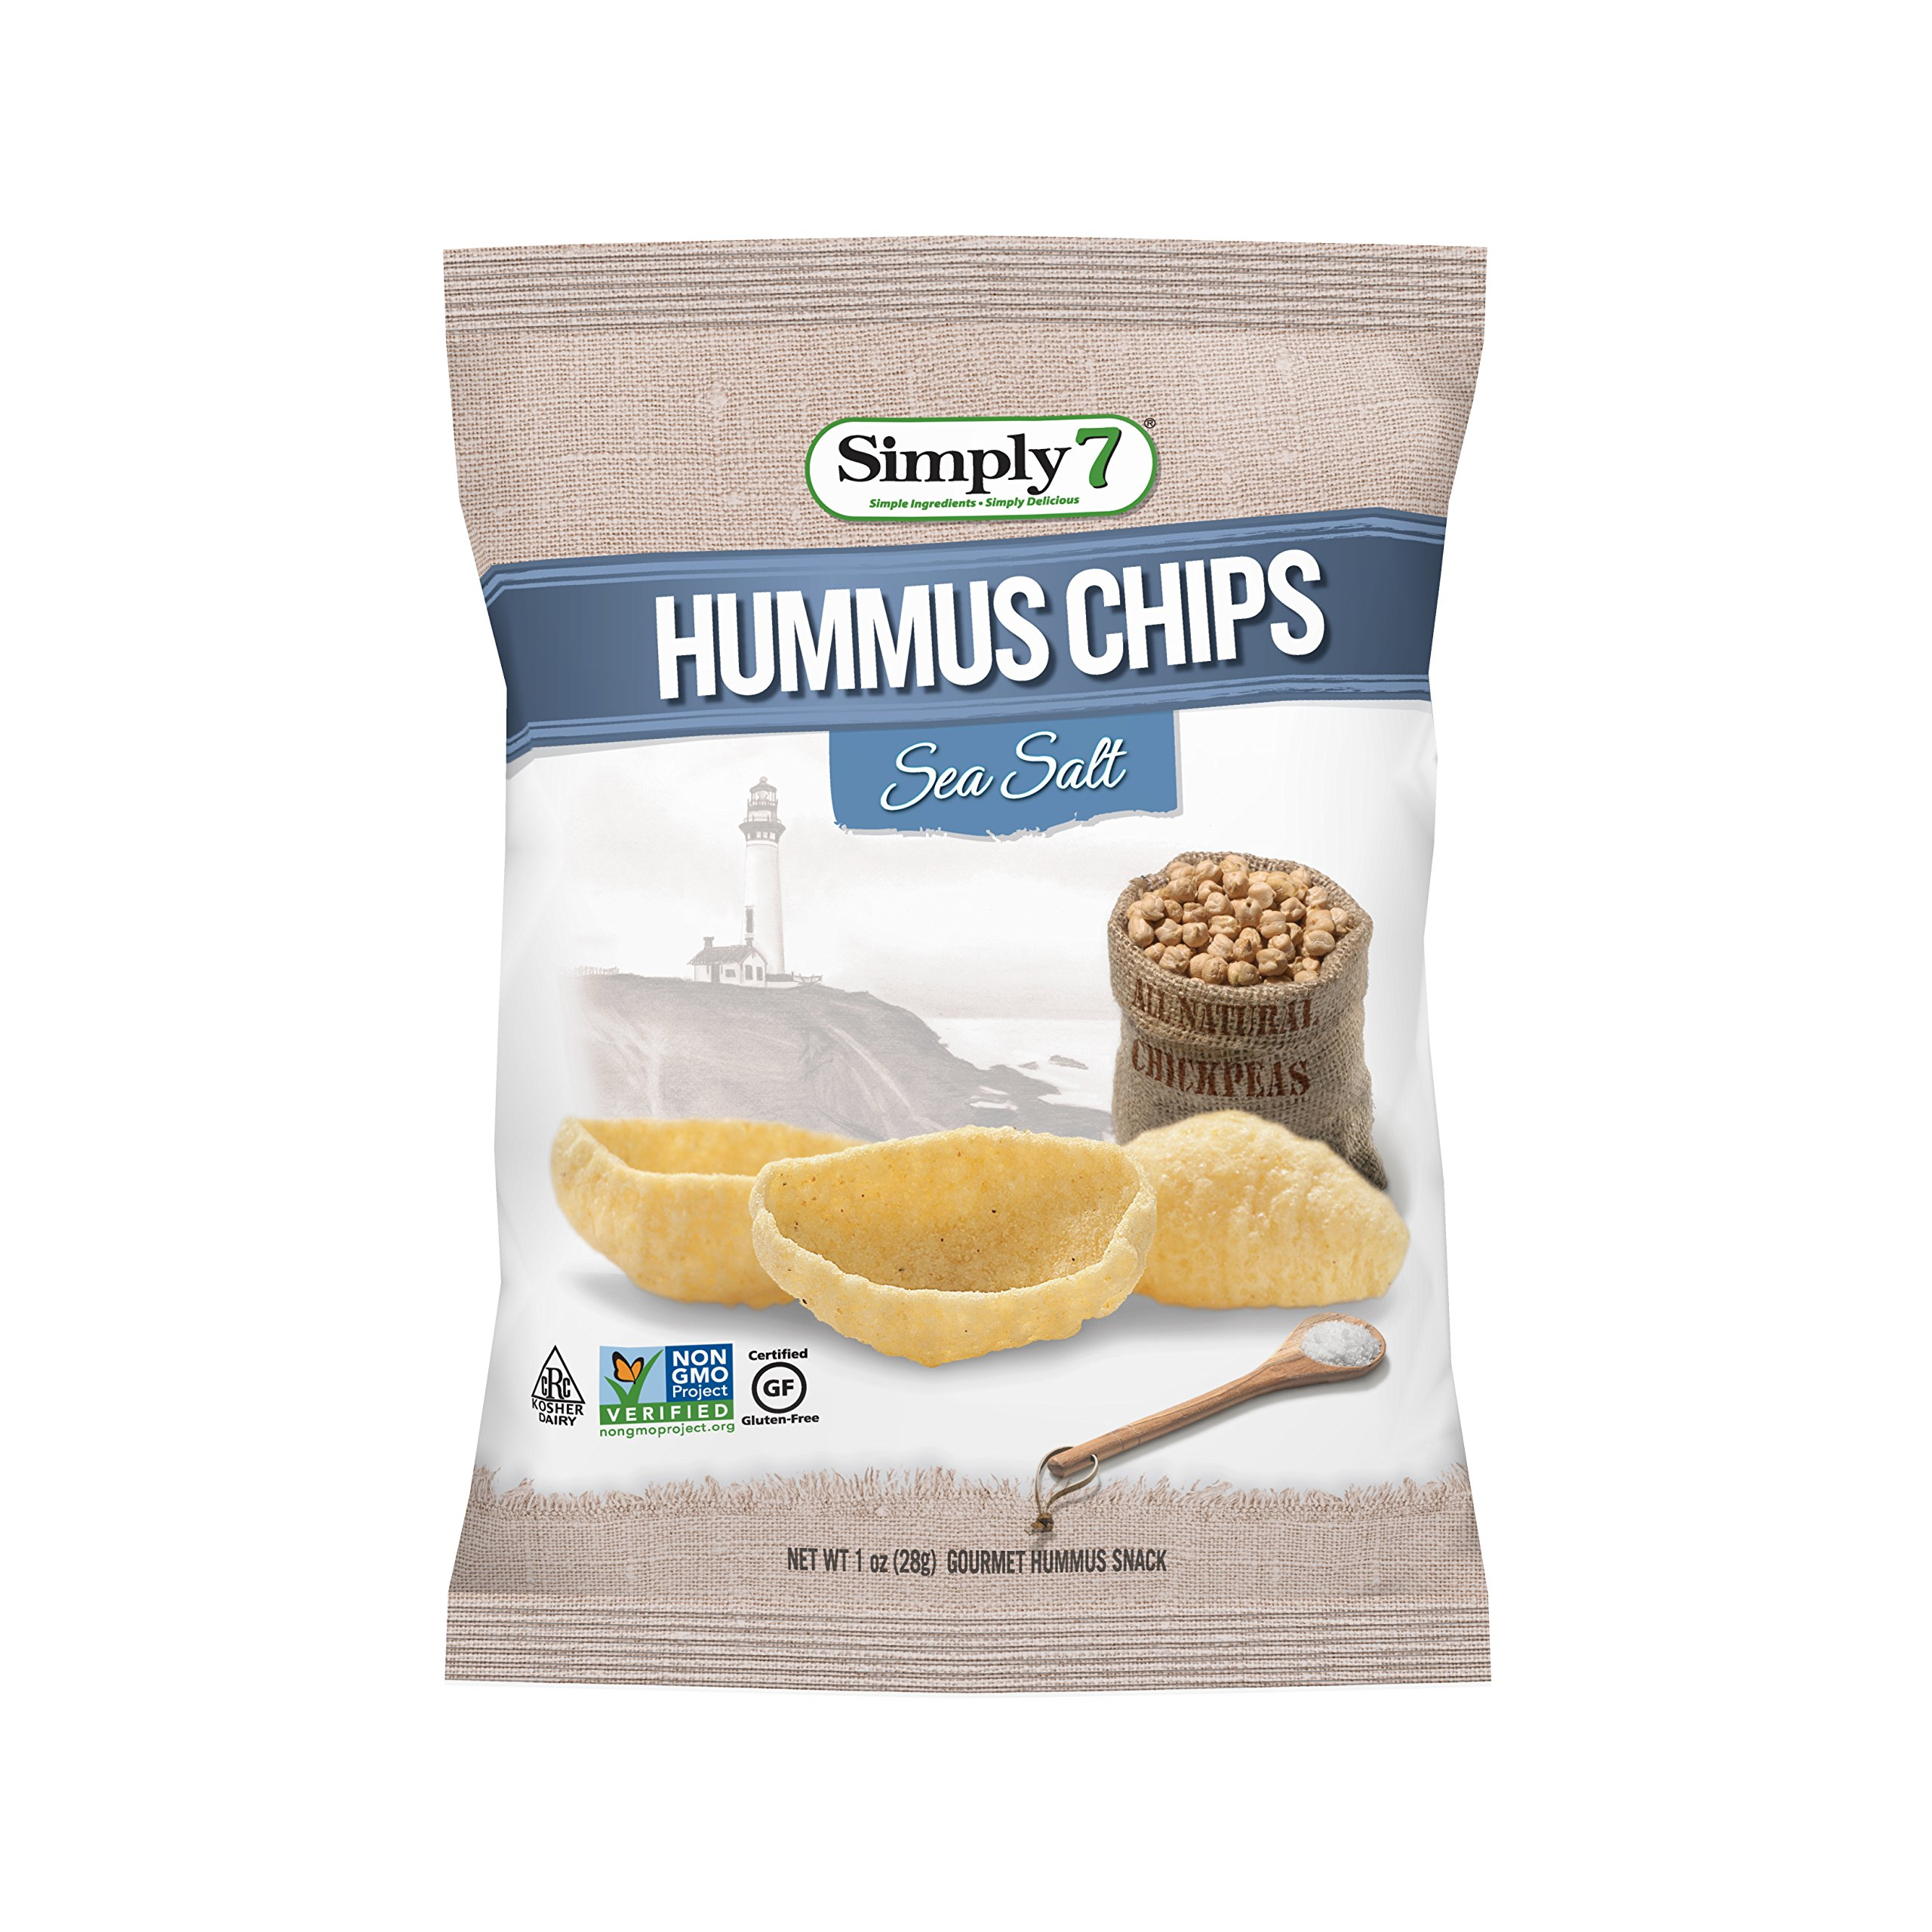 Simply7 Gluten Free Chickpea Hummus Chips, Sea Salt, 1 Ounce (Pack of 24)